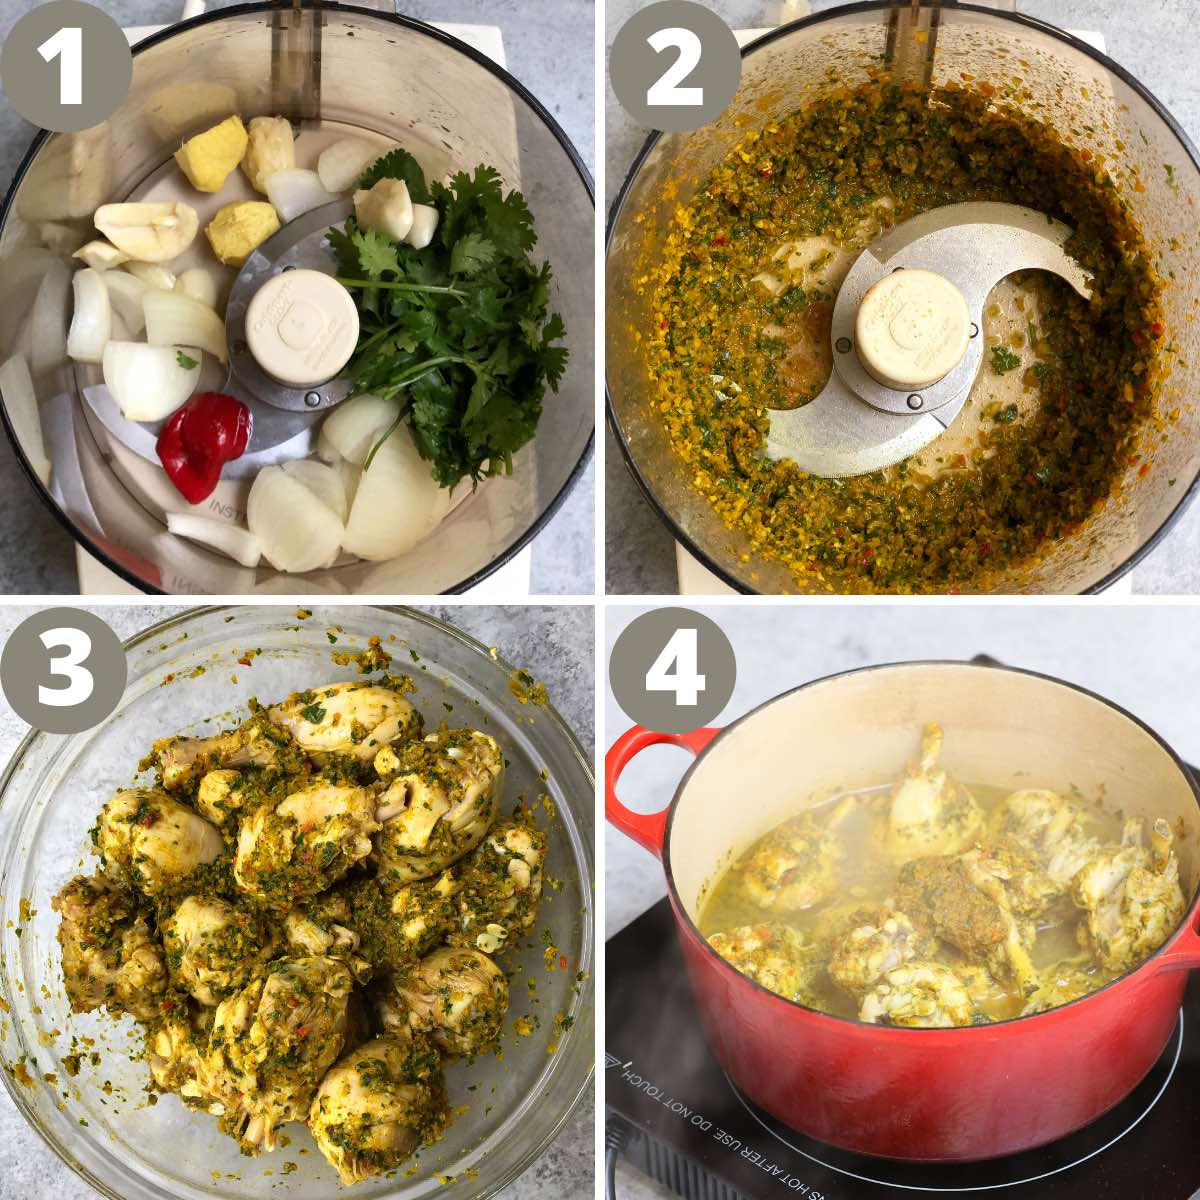 The key steps for making curry chicken: making the paste, coating the chicken and cooking in a pot